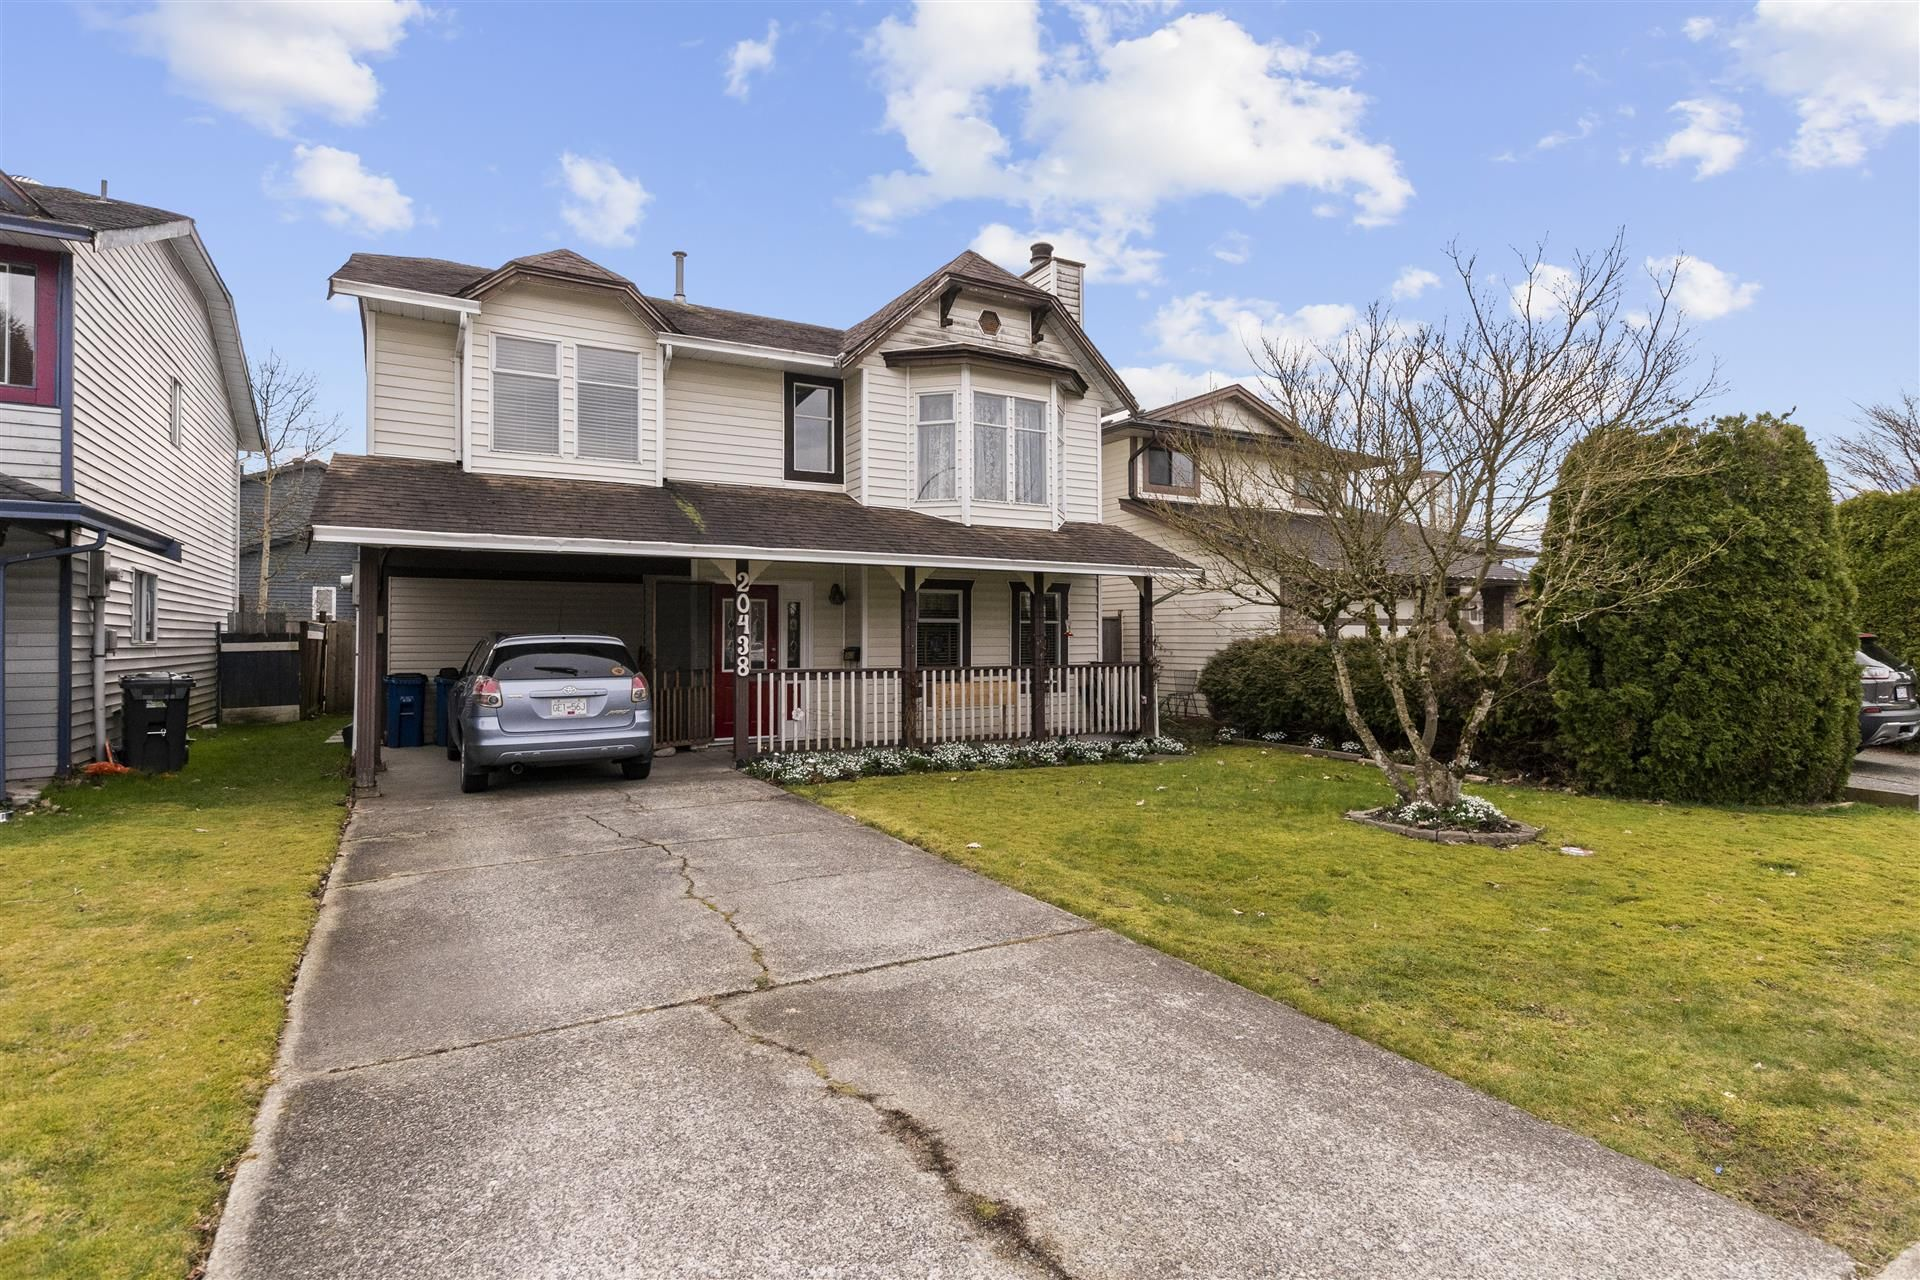 Main Photo: 20438 DALE Drive in Maple Ridge: Southwest Maple Ridge House for sale : MLS®# R2548457